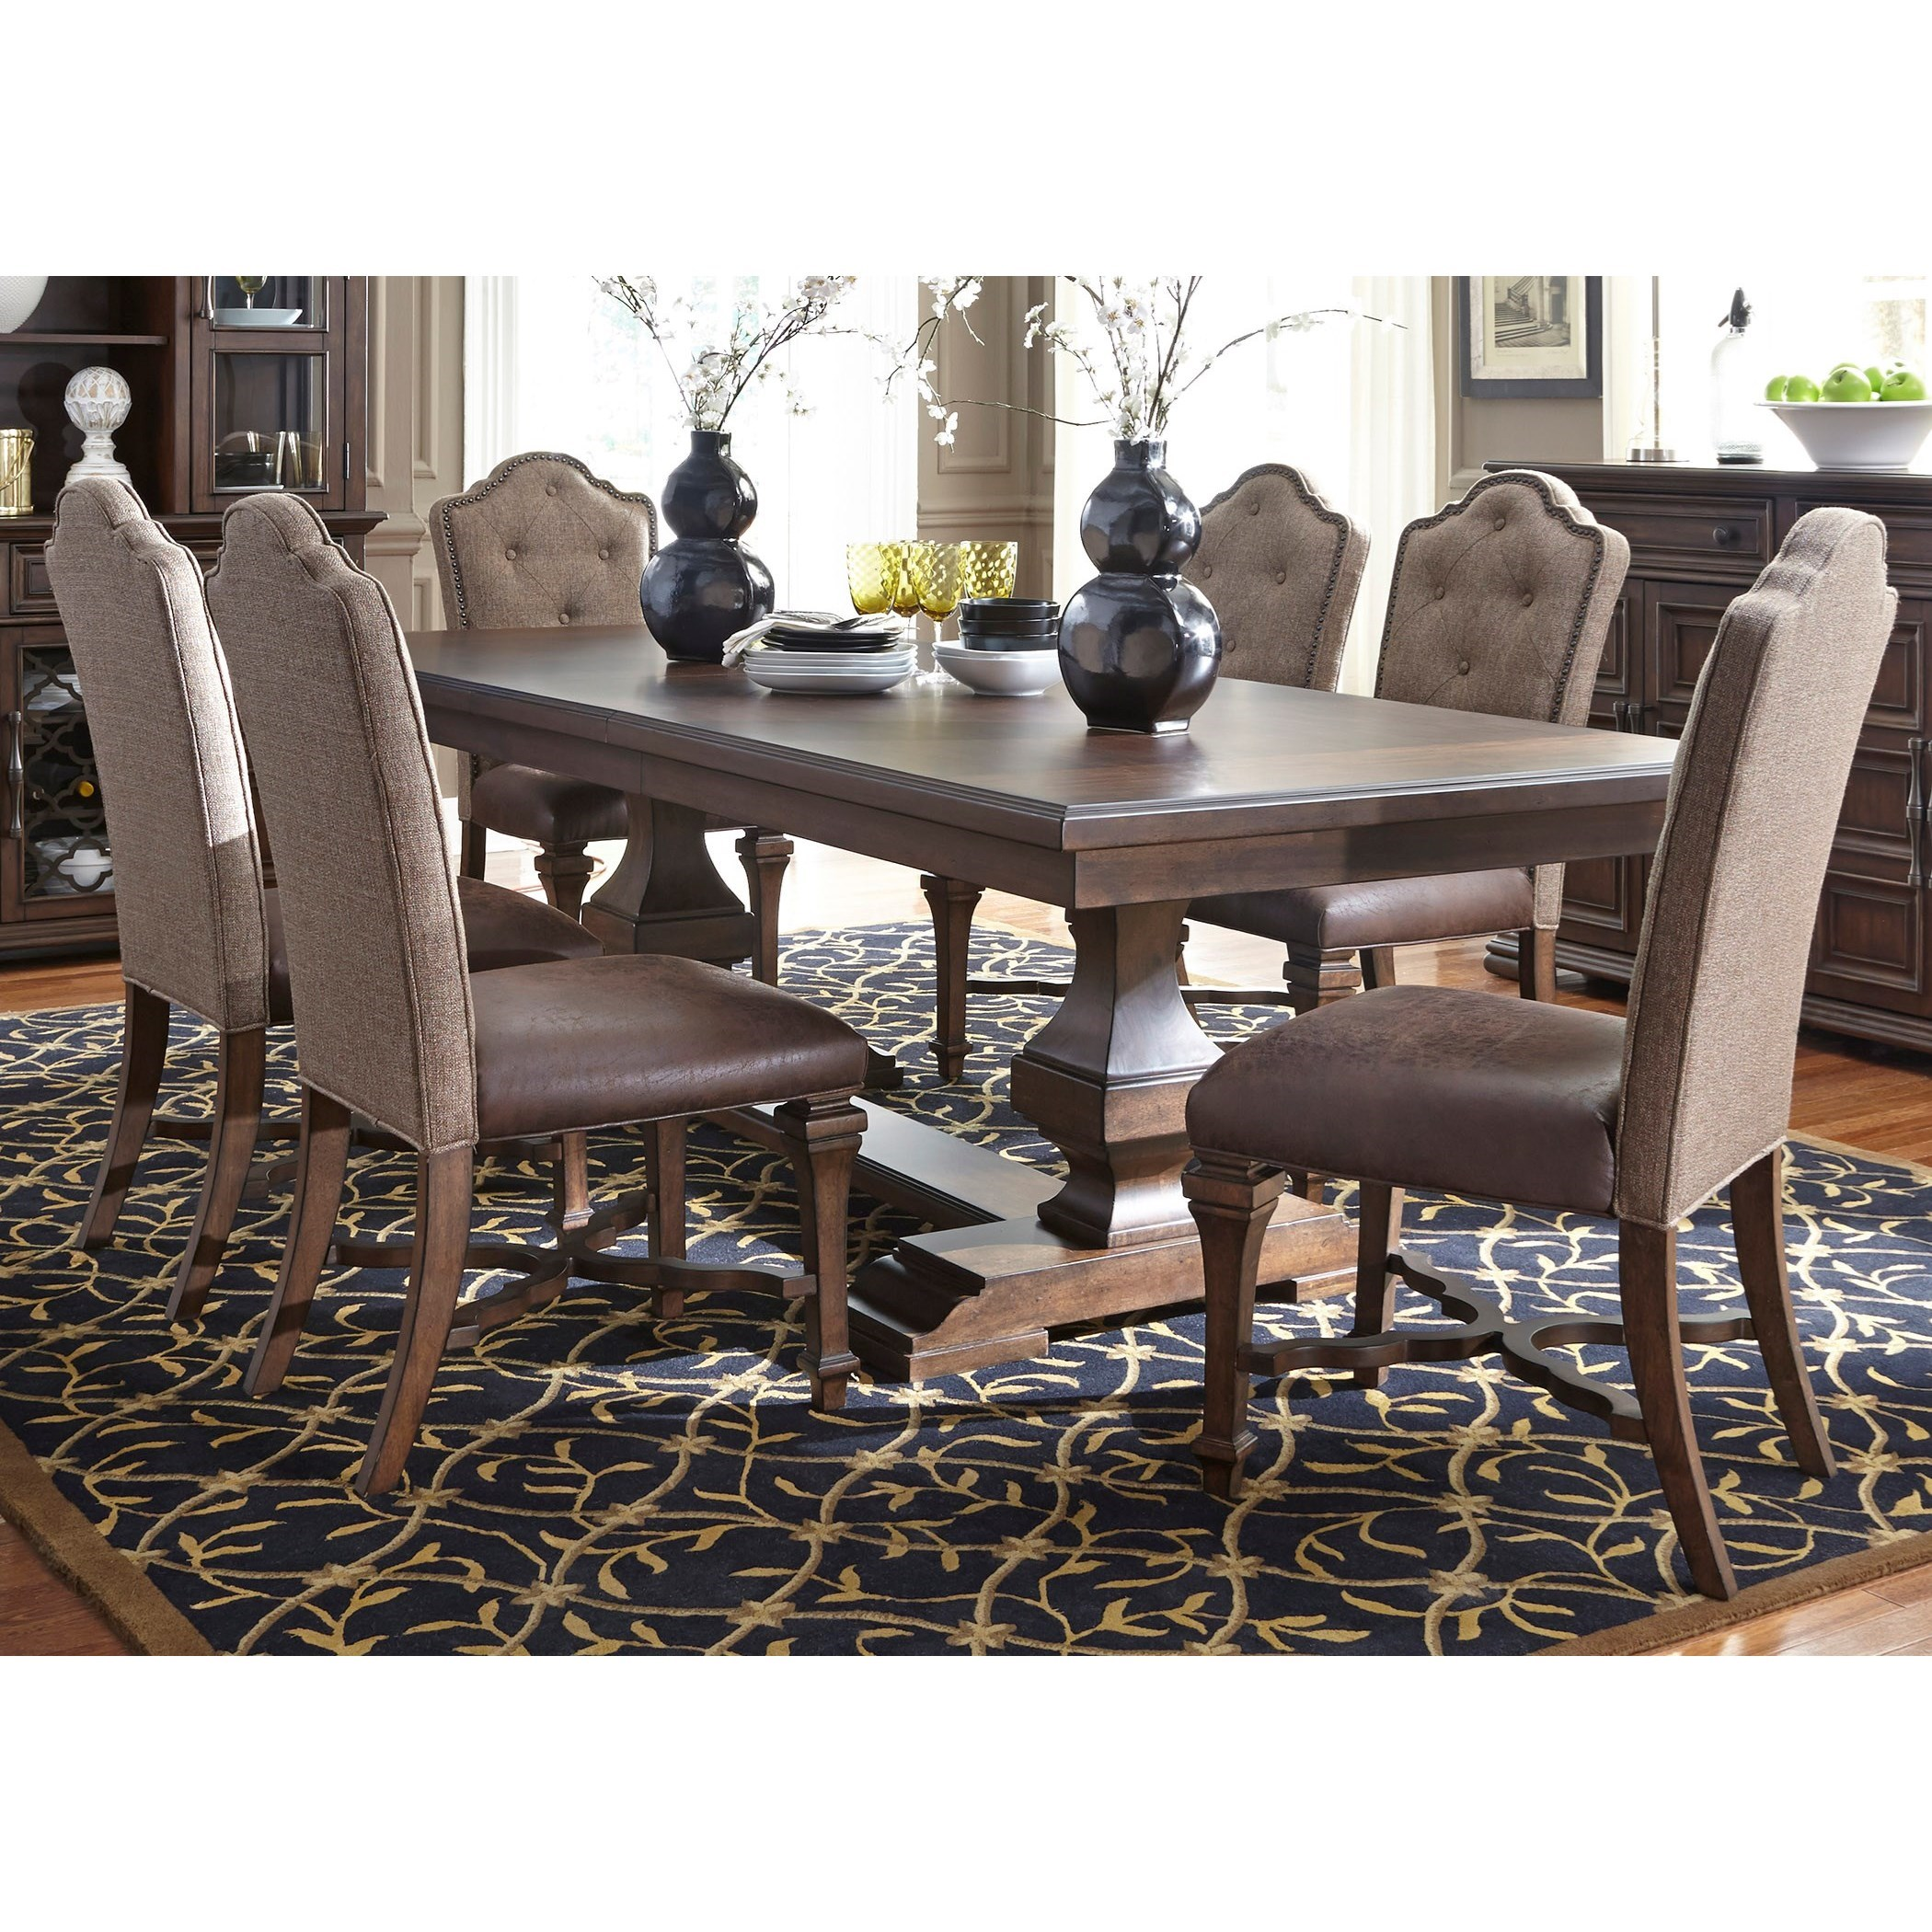 Furniture Of America Dubelle 7 Piece Formal Dining Set: Liberty Furniture Lucca Formal 7 Piece Two Pedestal Table